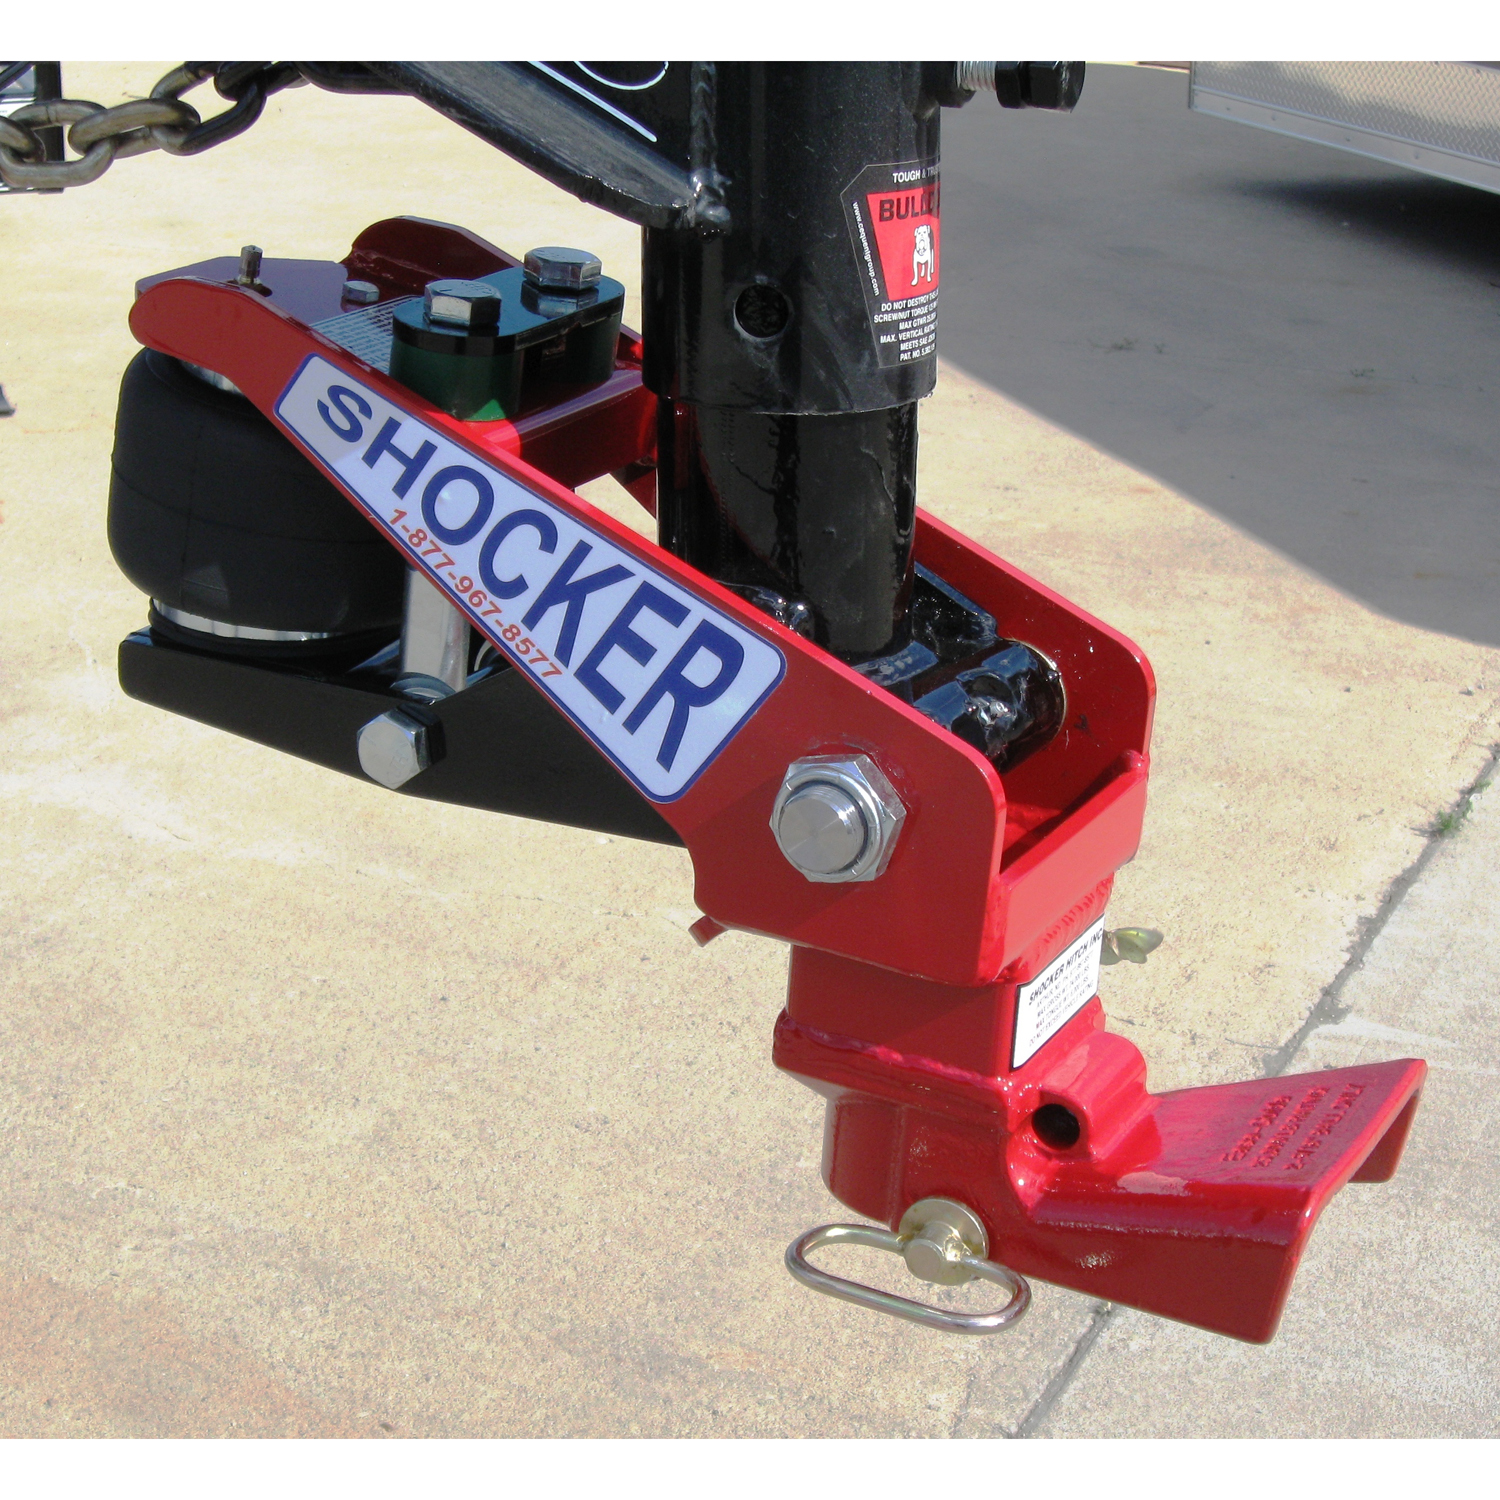 Gooseneck Hitch 4 inch ROUND Tube with EASE GUIDE SHHSH-900EG | Tool Discounter